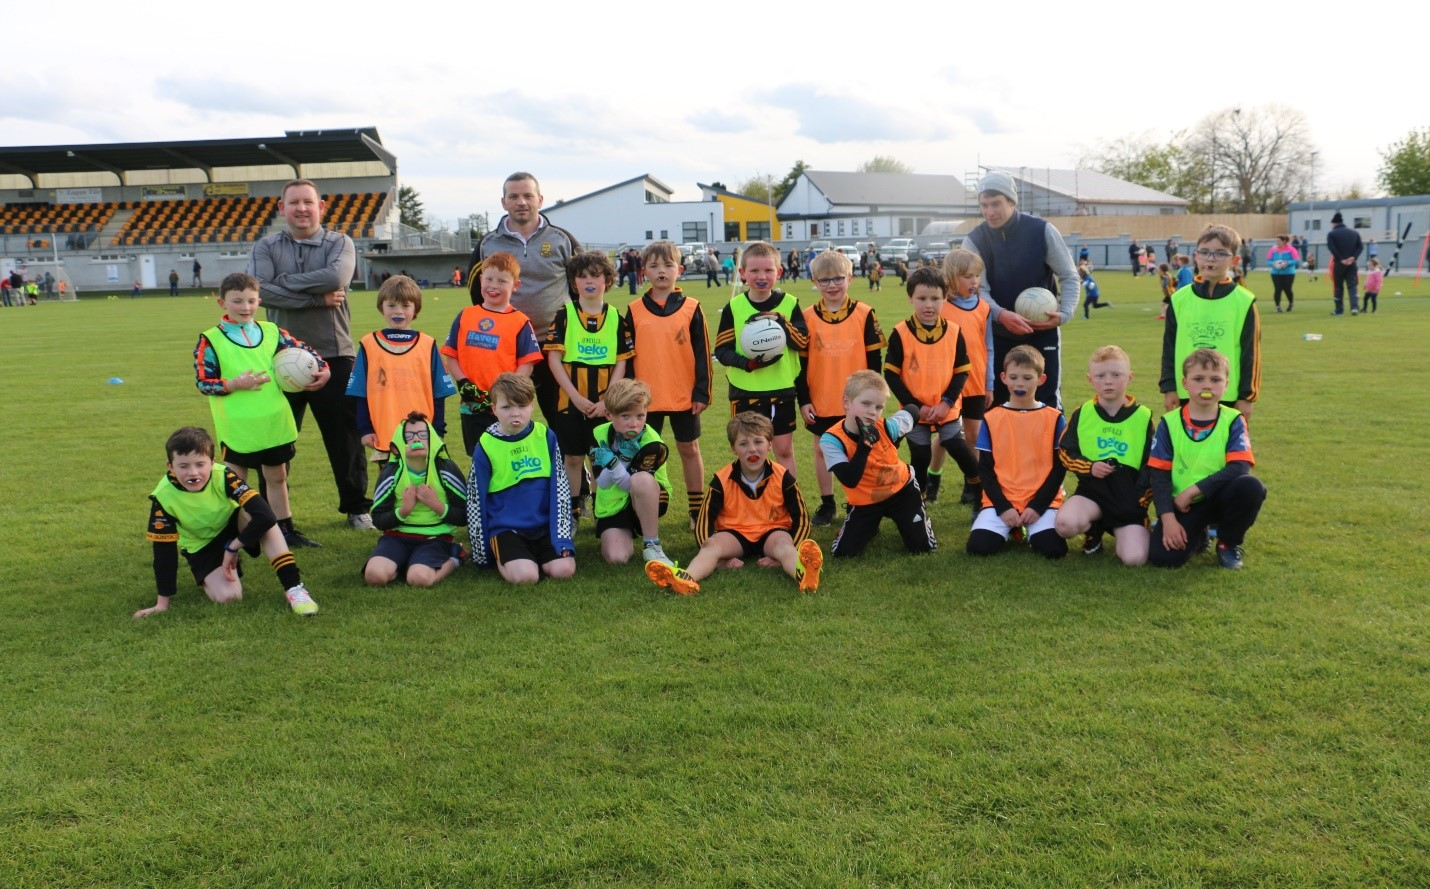 Members of The Downs GAA U9s Returning to Play May 7th 2021